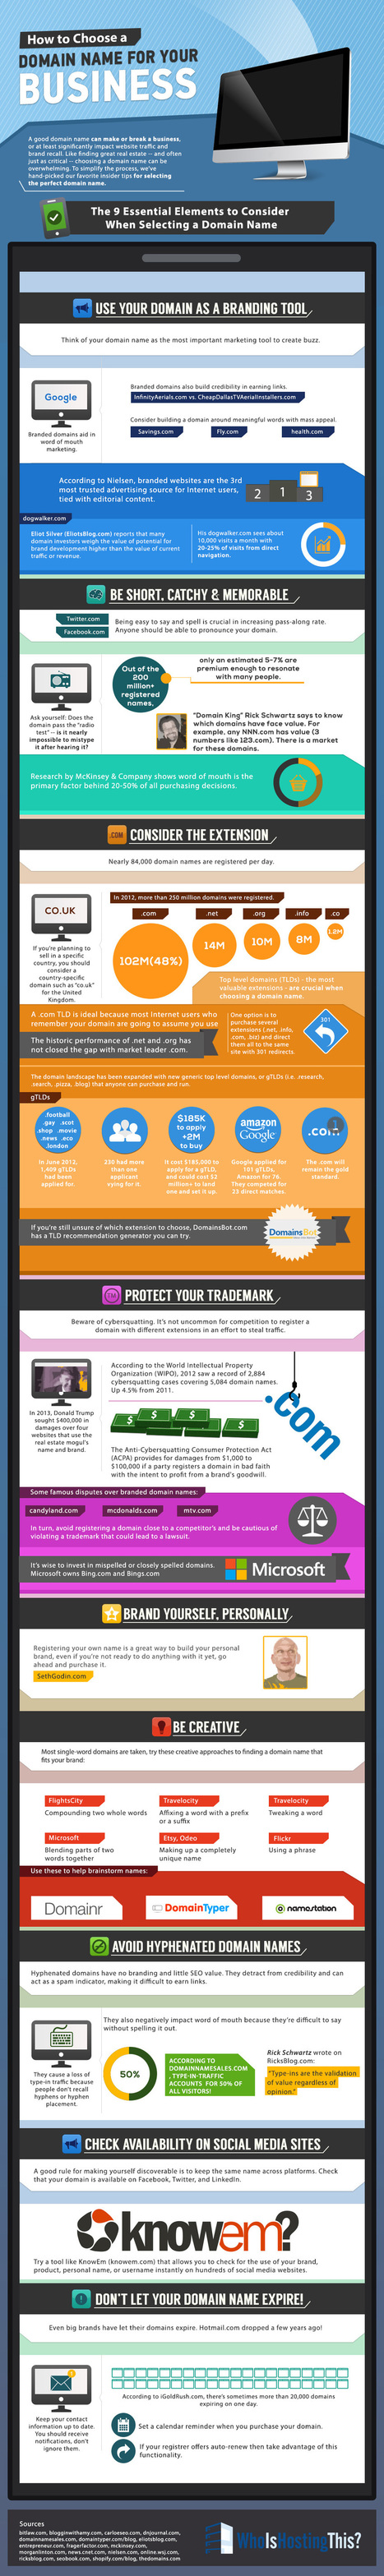 How to Choose a Domain Name [Infographic] | Online World | Scoop.it